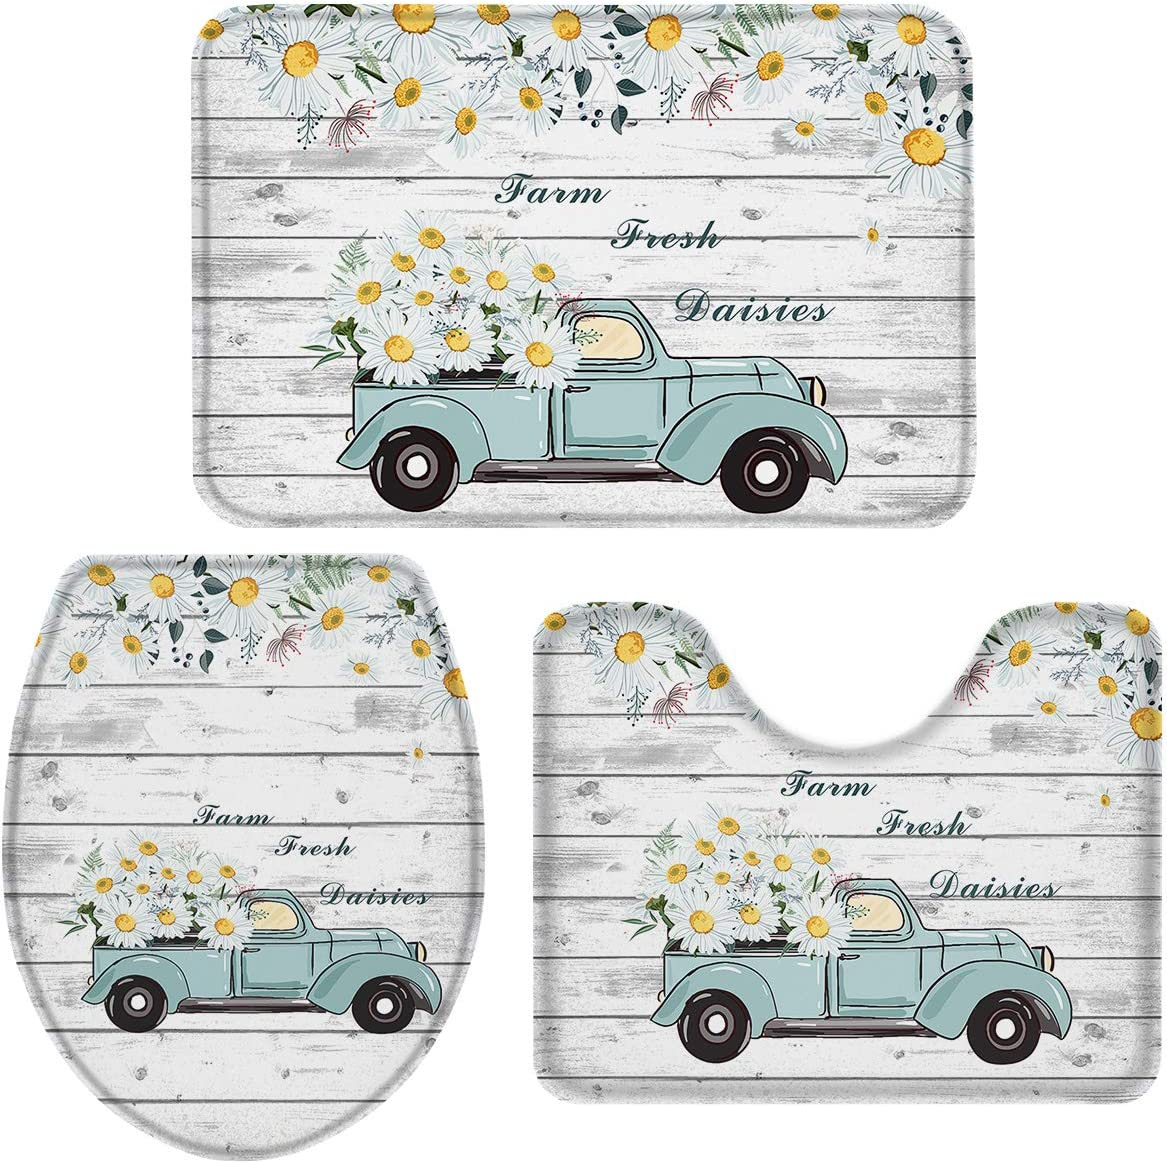 OneHoney 3-Piece Bath Rug and Mat Sets, Fram Fresh Daisy and Vintage Truck Non-Slip Bathroom Decor Doormat Runner Rugs, U-Shaped Toilet Floor Mats, Toilet Seat Cover Wood Texture